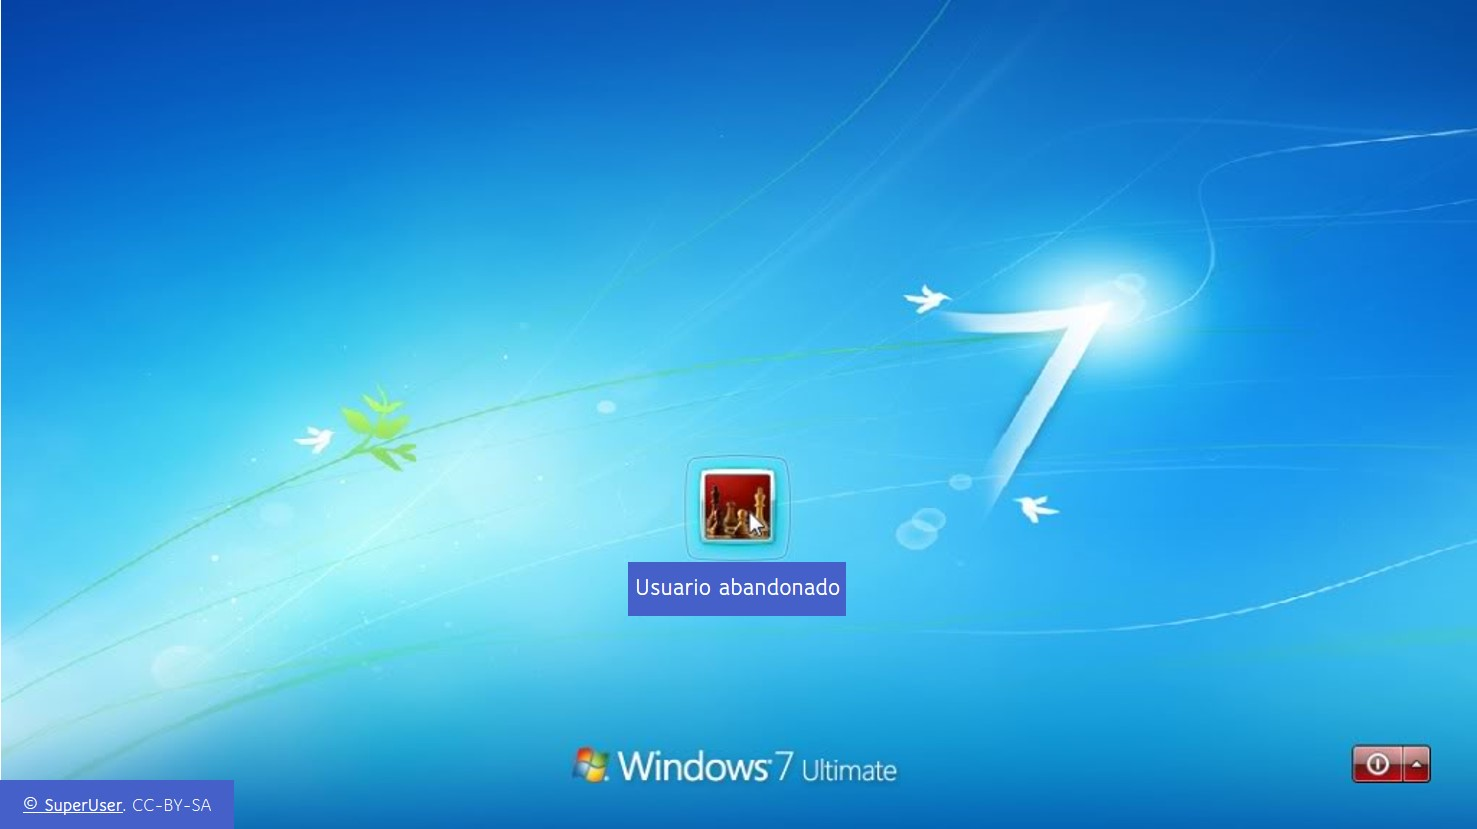 Windows 7 llegó a su fin